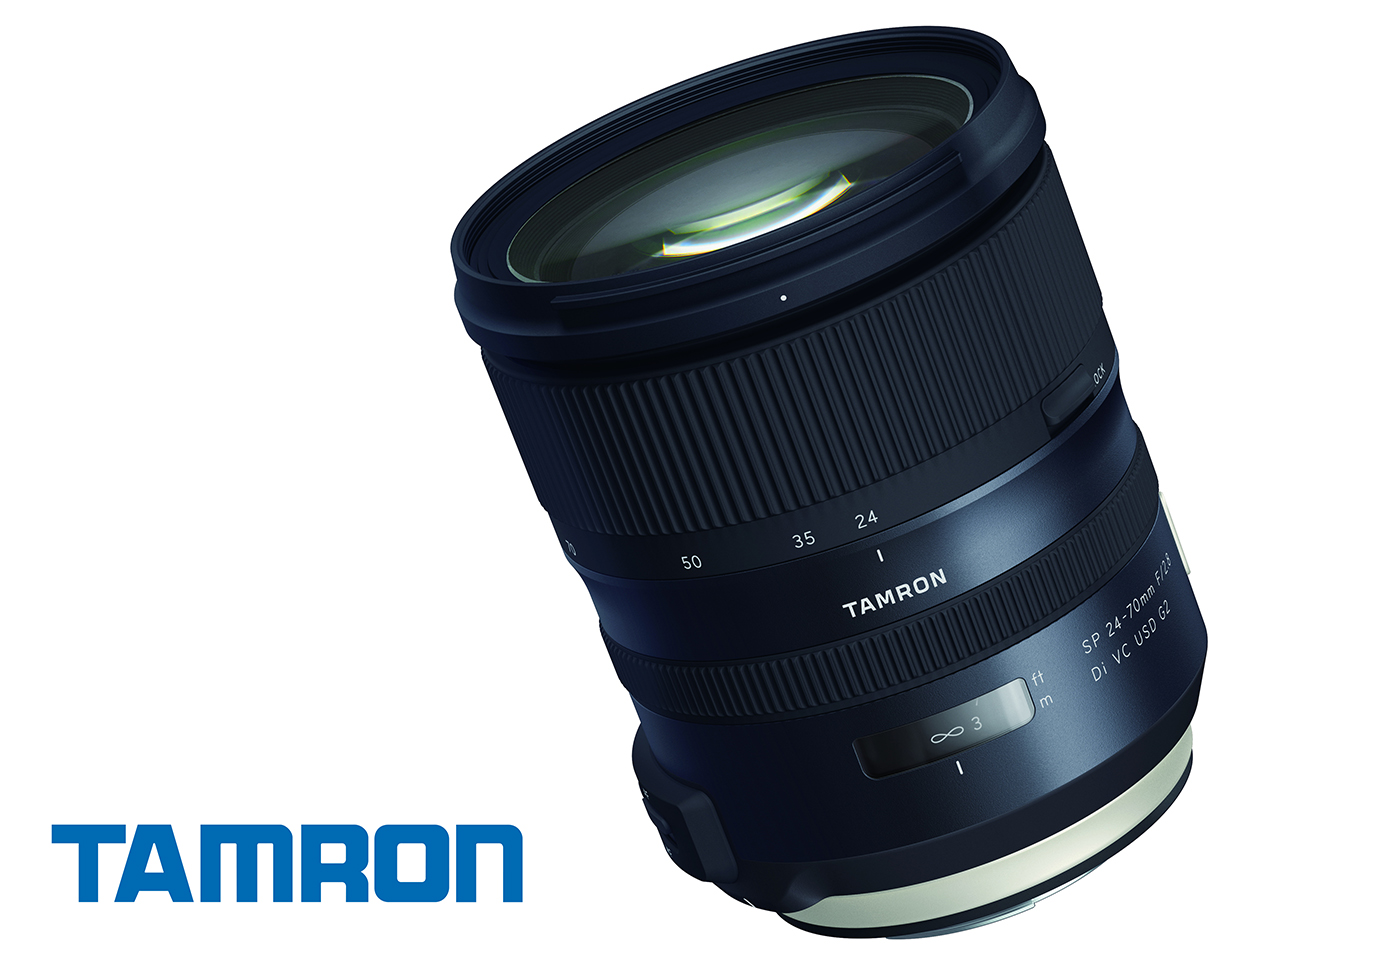 The new Tamron 24-70 F/2.8 G2 with dual micro processing units